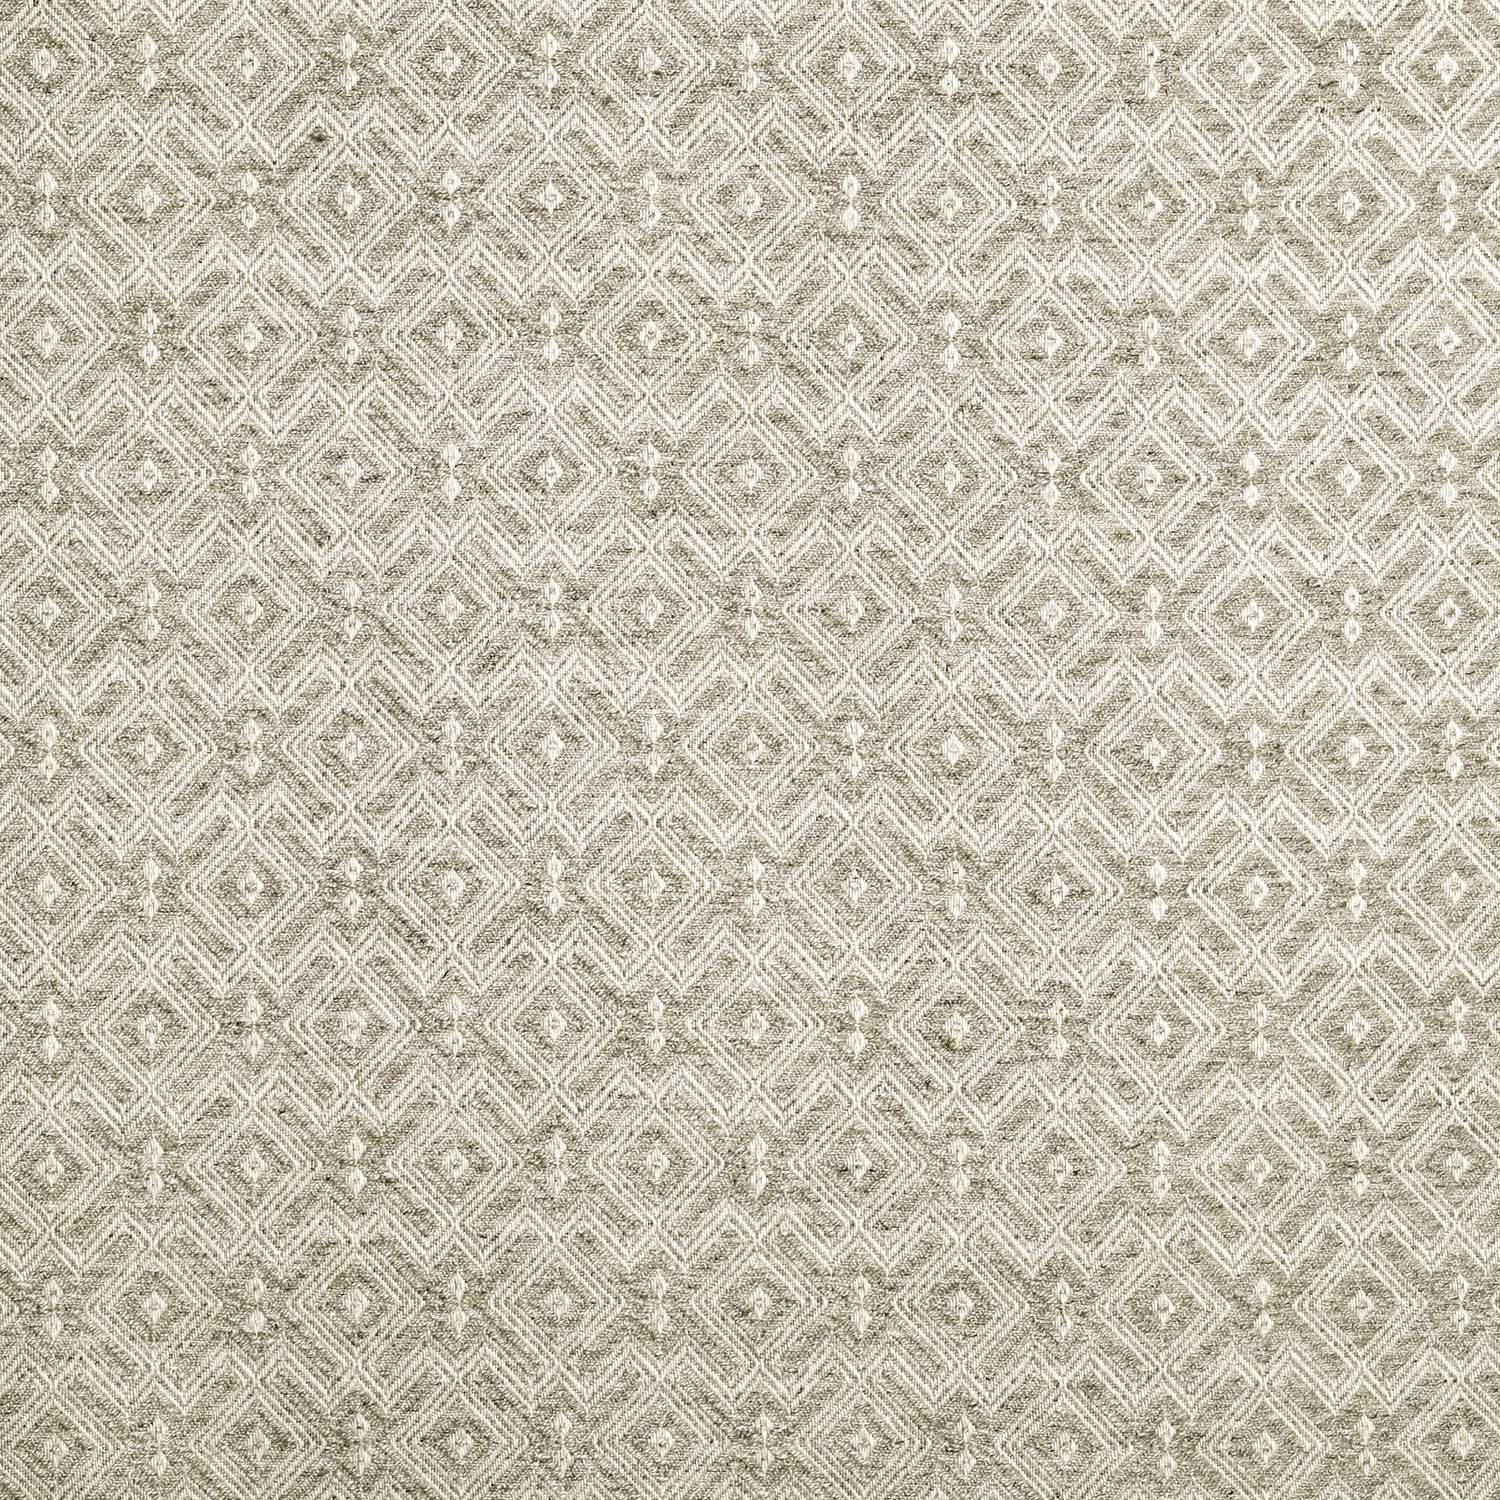 Copy of <p><strong>AMESBURY</strong>natural/white 1310-03<a href=/the-winthorp-collection/amersbury-natural-white1310-03>More →</a></p>